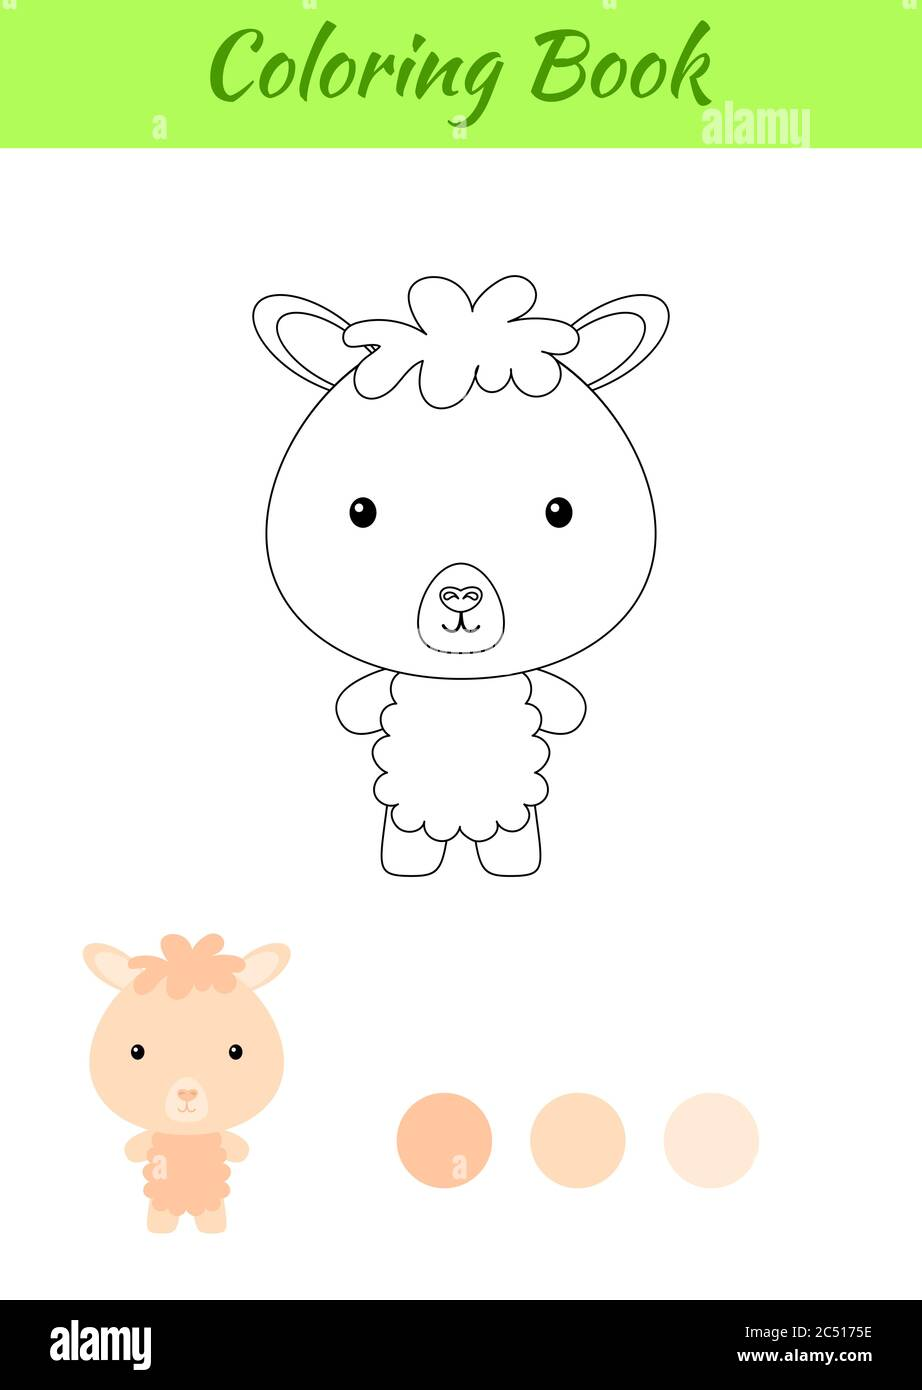 coloring page happy little baby alpaca coloring book for kids educational activity for preschool years kids and toddlers with cute animal stock vector image art alamy alamy